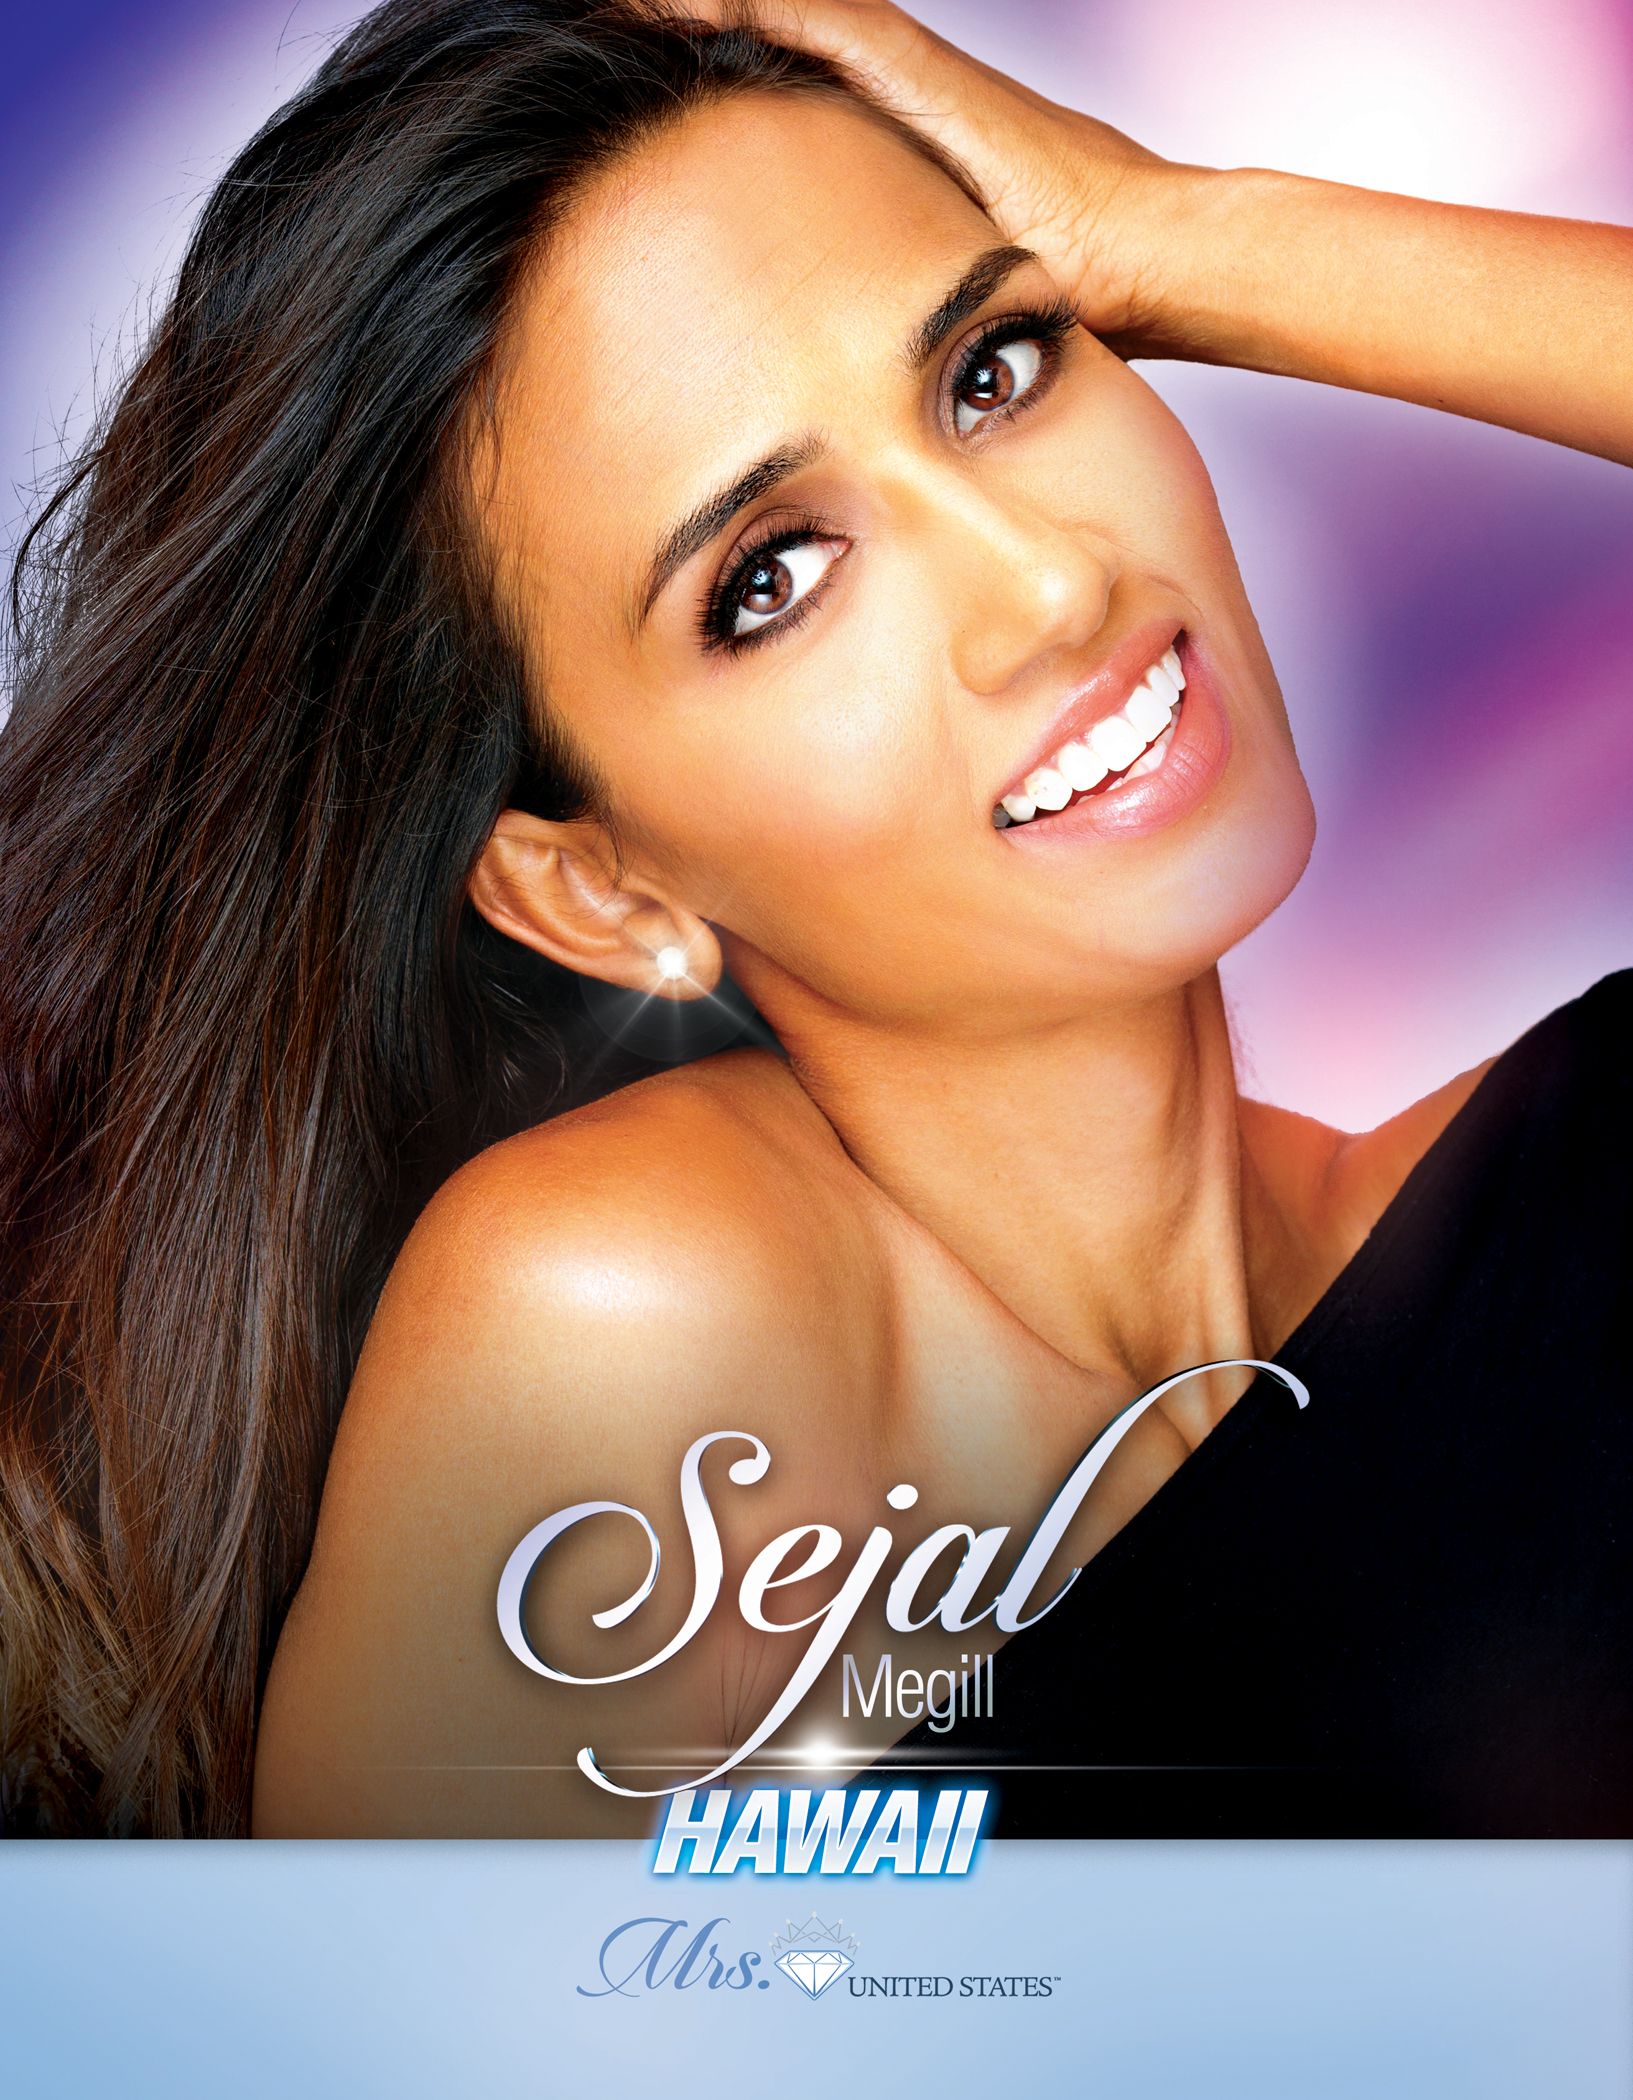 Sejal Megill Mrs. Hawaii United States - 2019